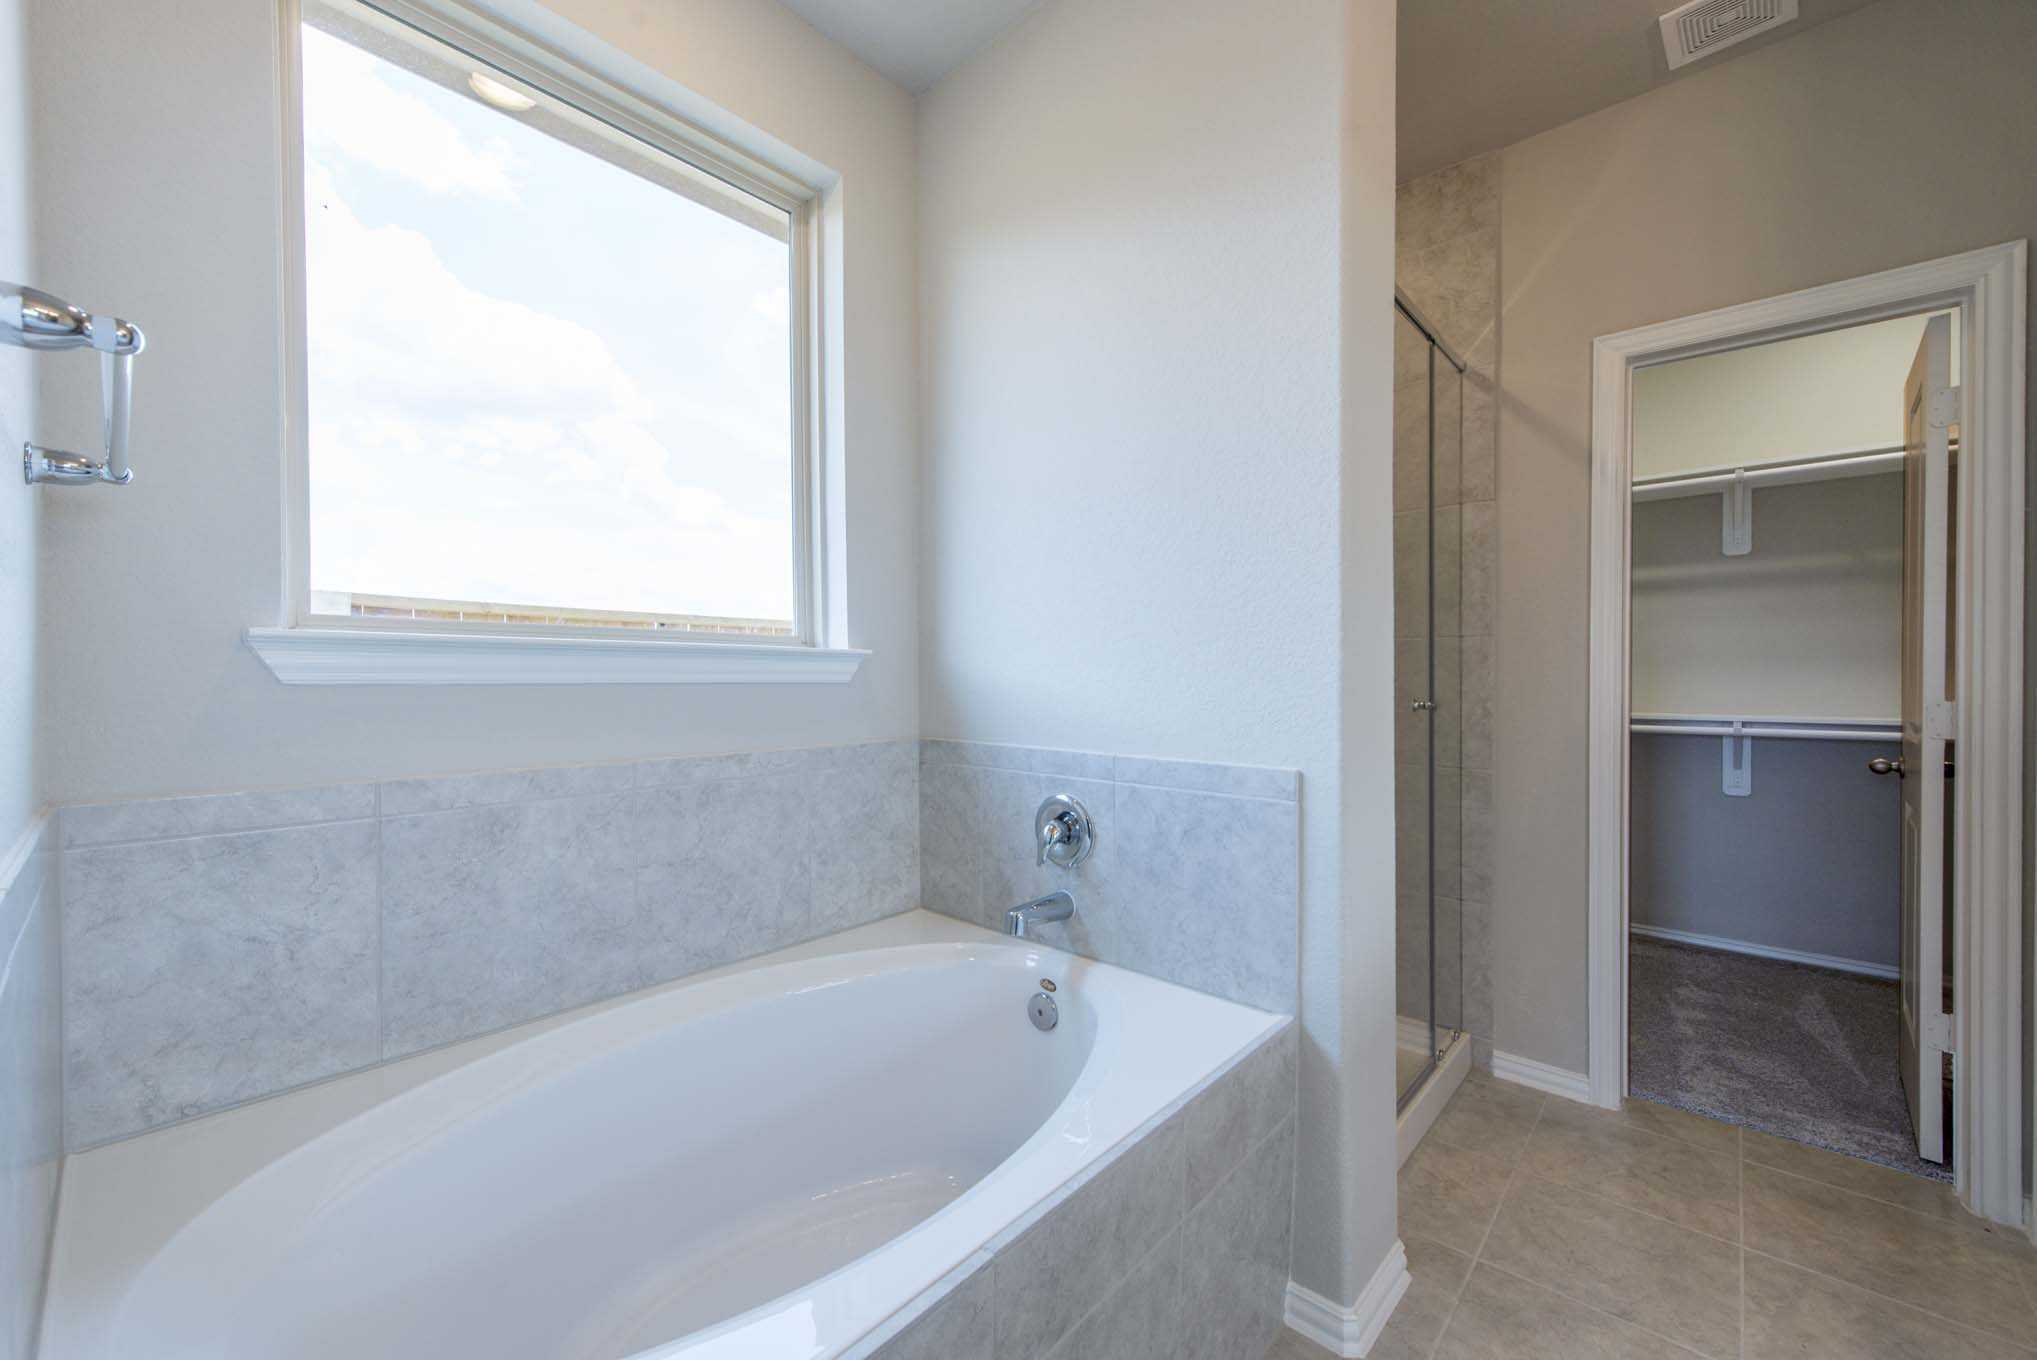 Bathroom featured in the Plan Windsor By Highland Homes in Houston, TX